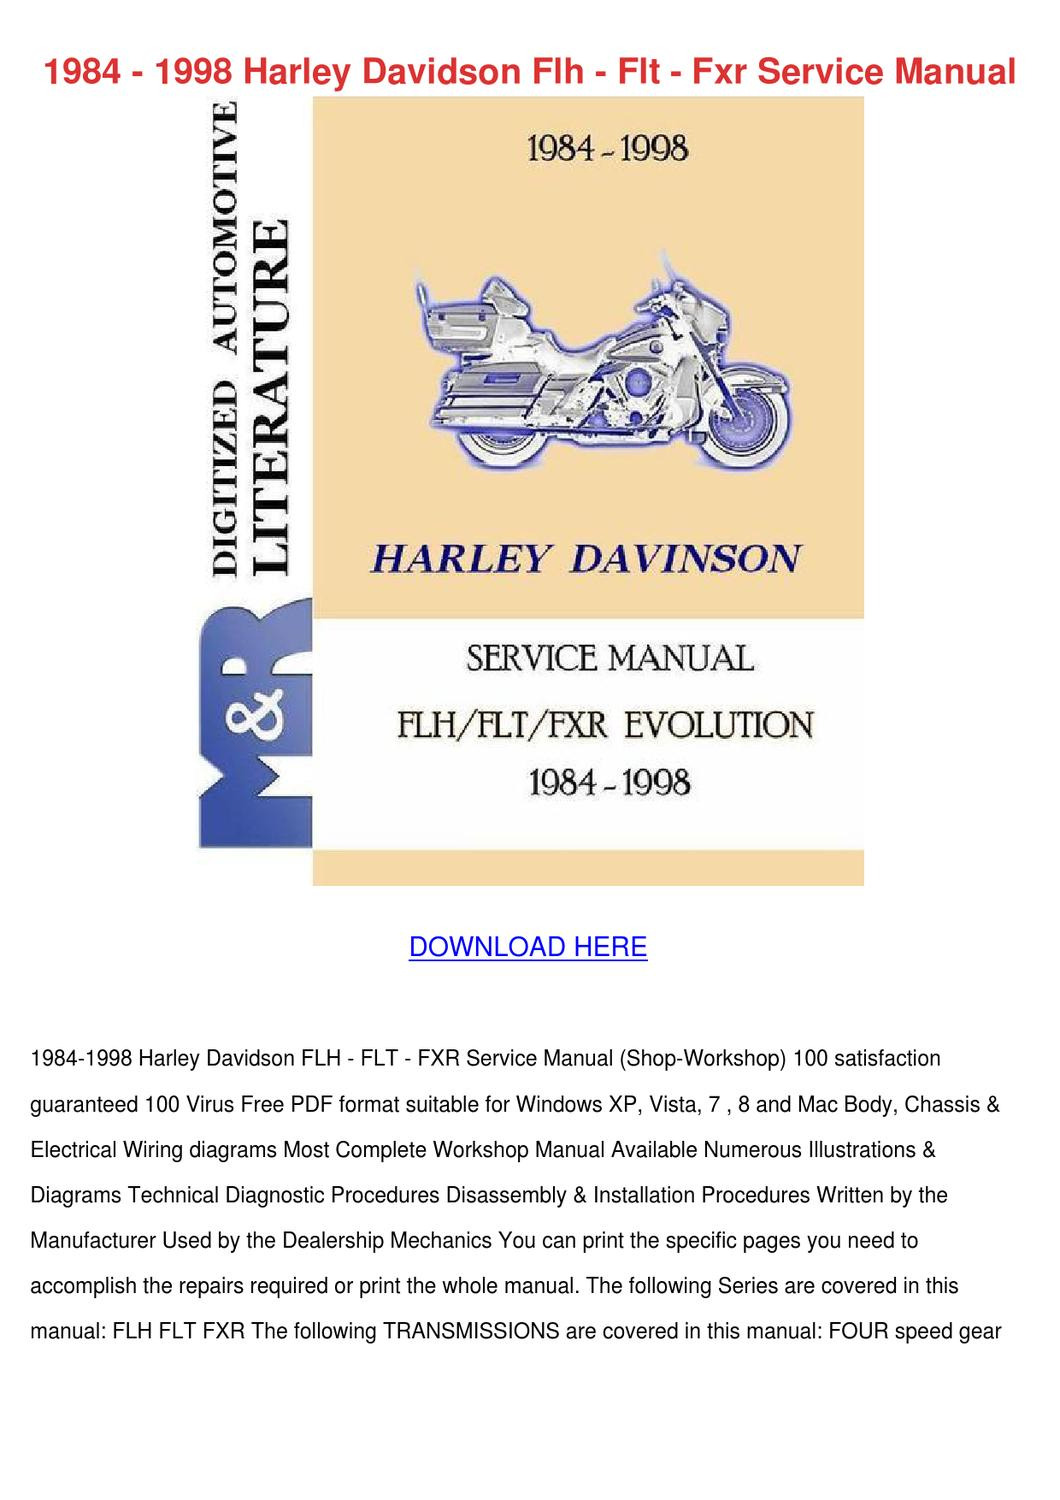 1995 Flht Wiring Diagram - Today Diagram Database Harley Road King Wiring Diagram on